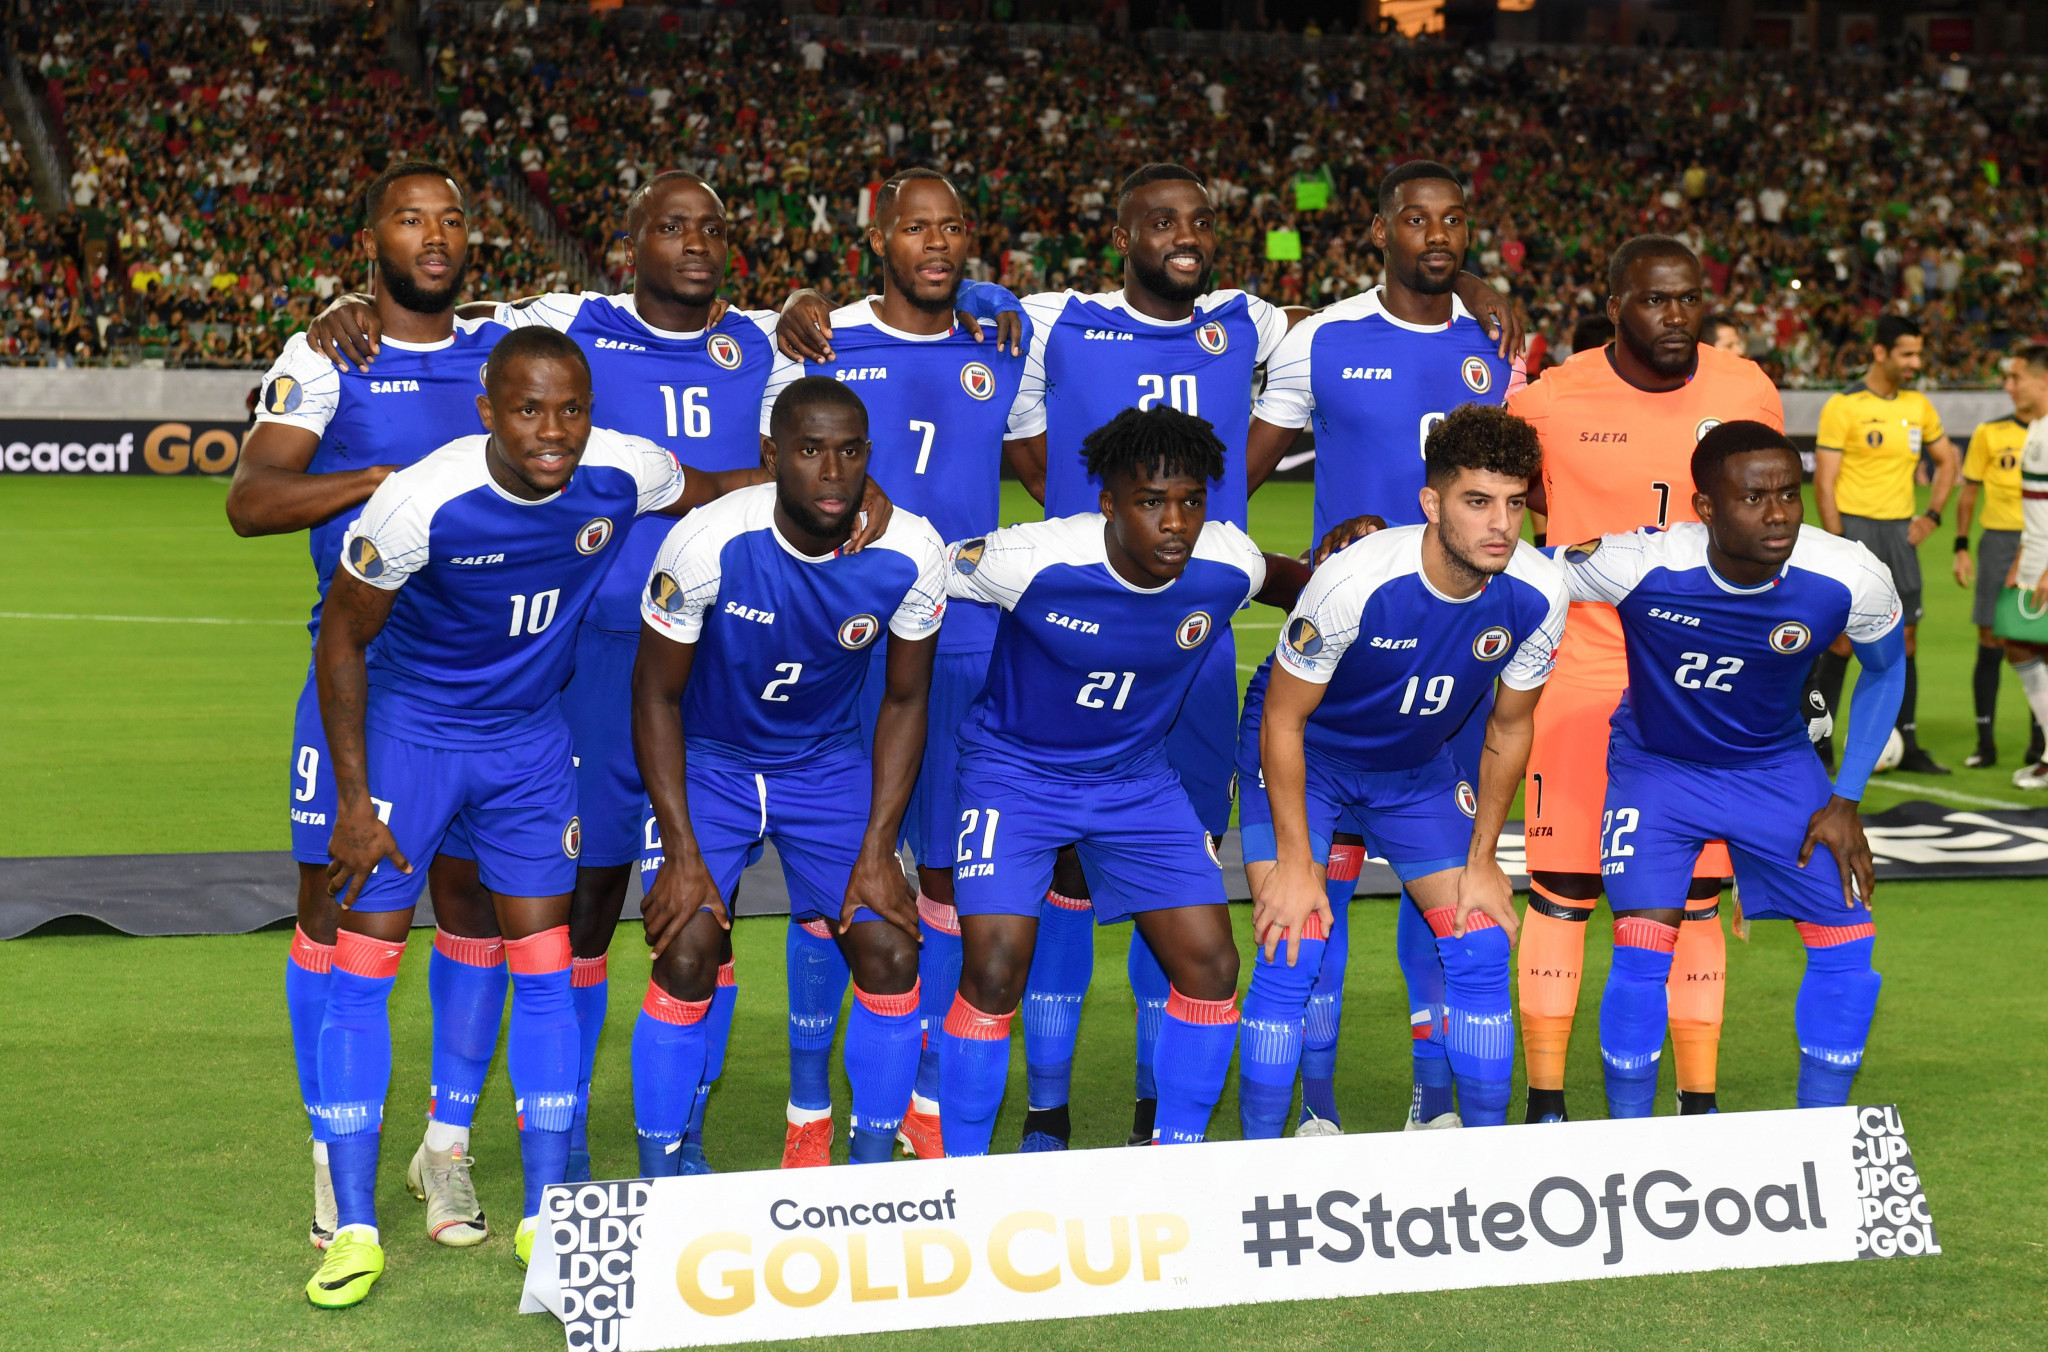 FIFA Normalisation Committee to take over Haitian Football Federation operations